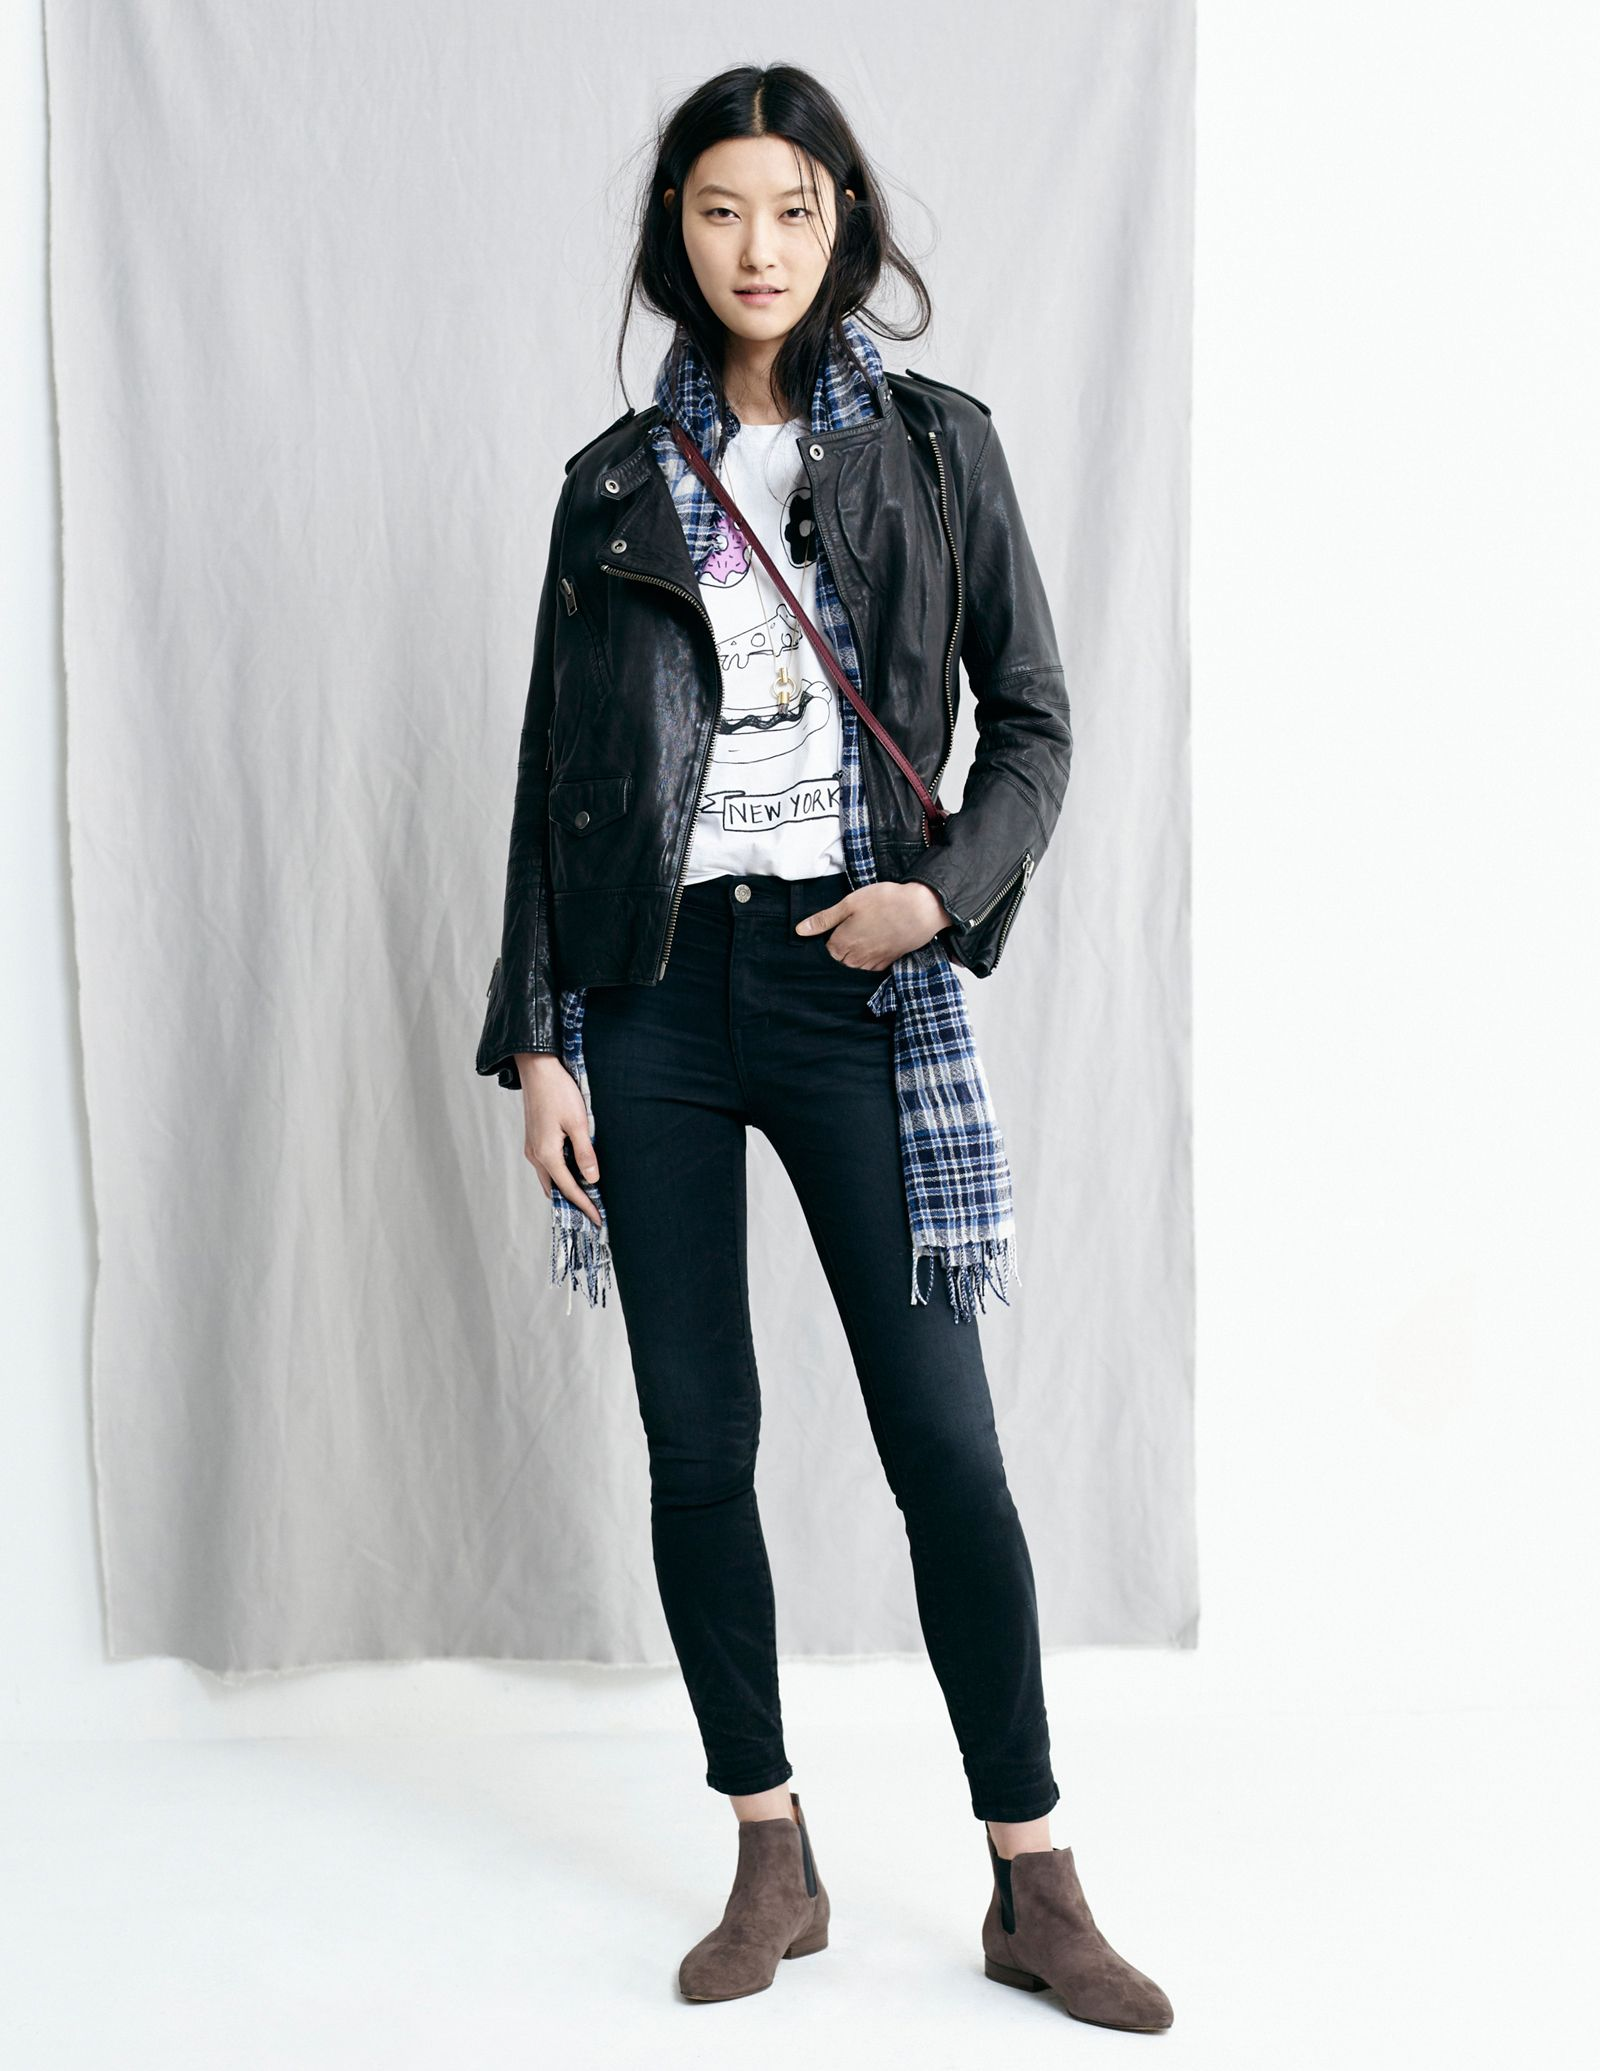 First Look: Alexa Chung For Madewell Fall 2011 Collection pics